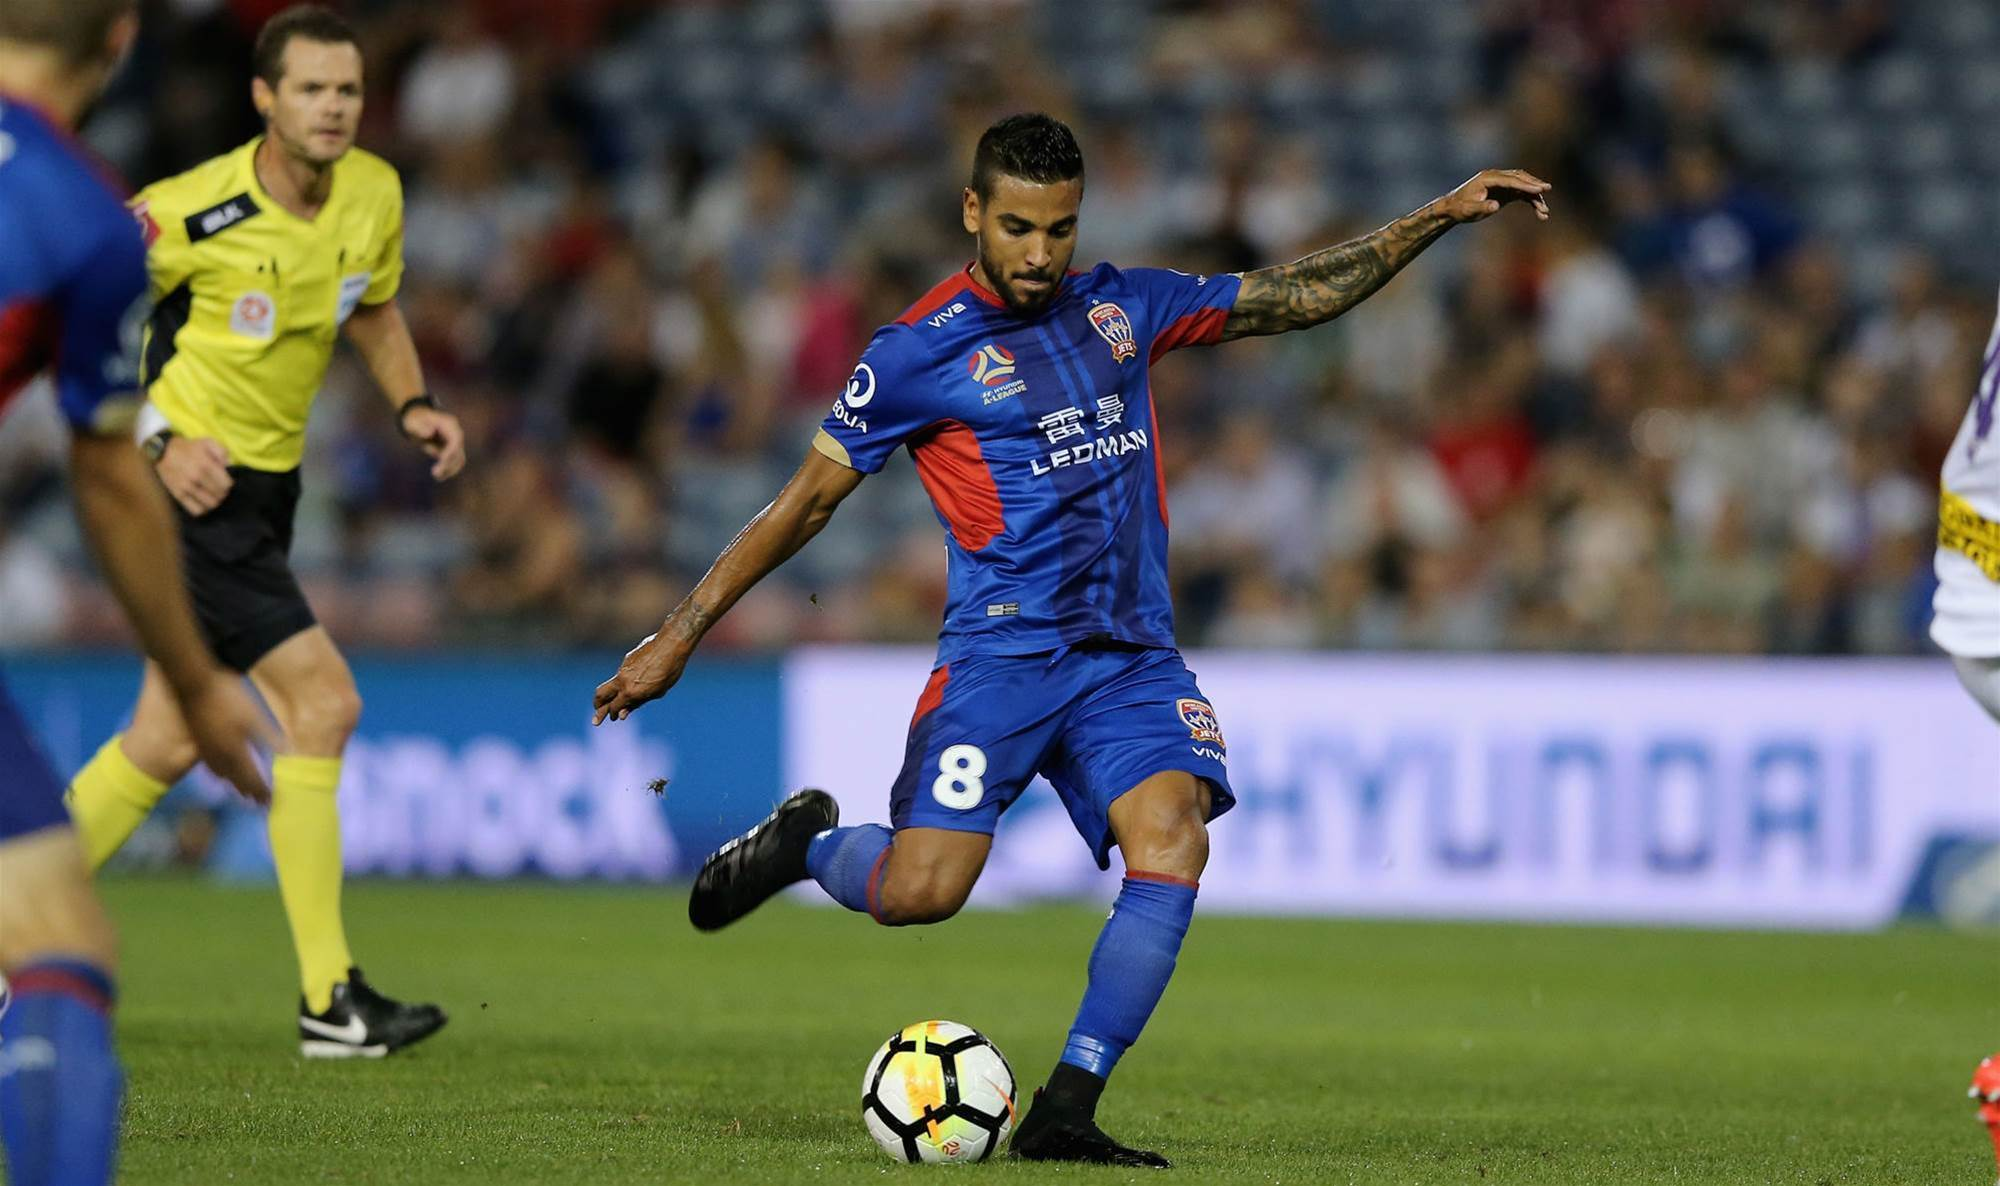 Vargas extends Newcastle Jets stay